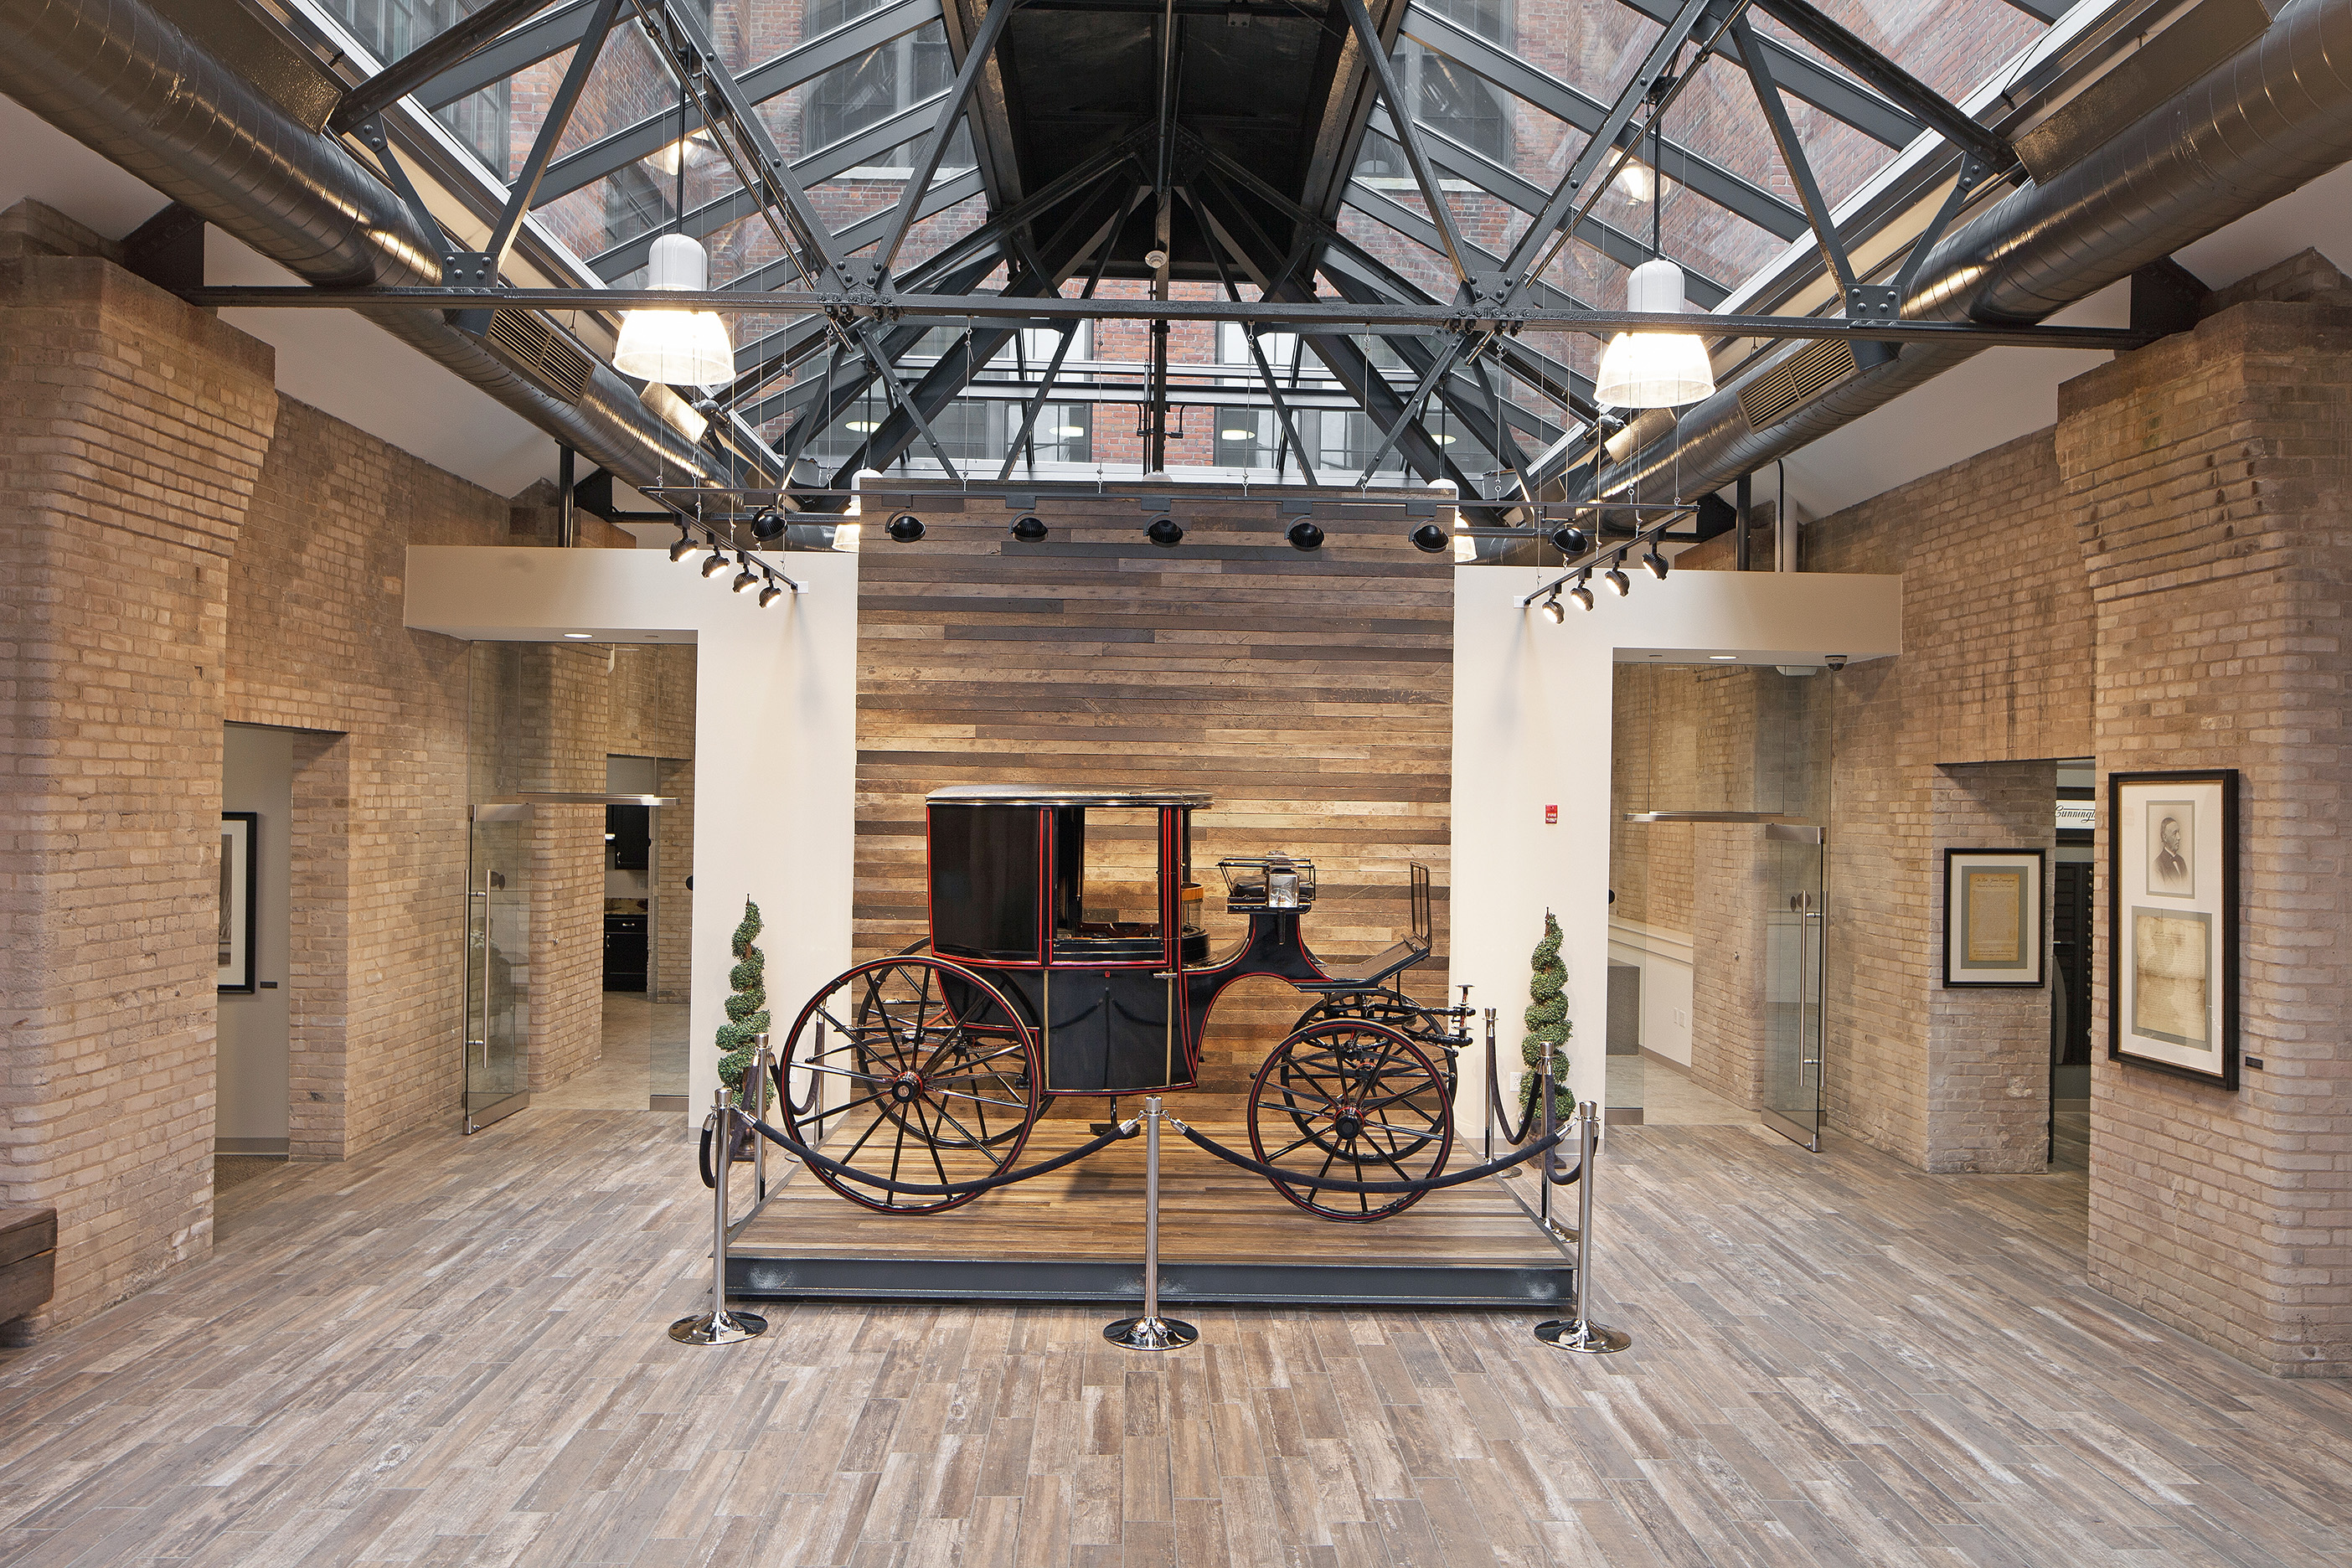 DePaul Carriage Factory Apartments in Rochester to be honored